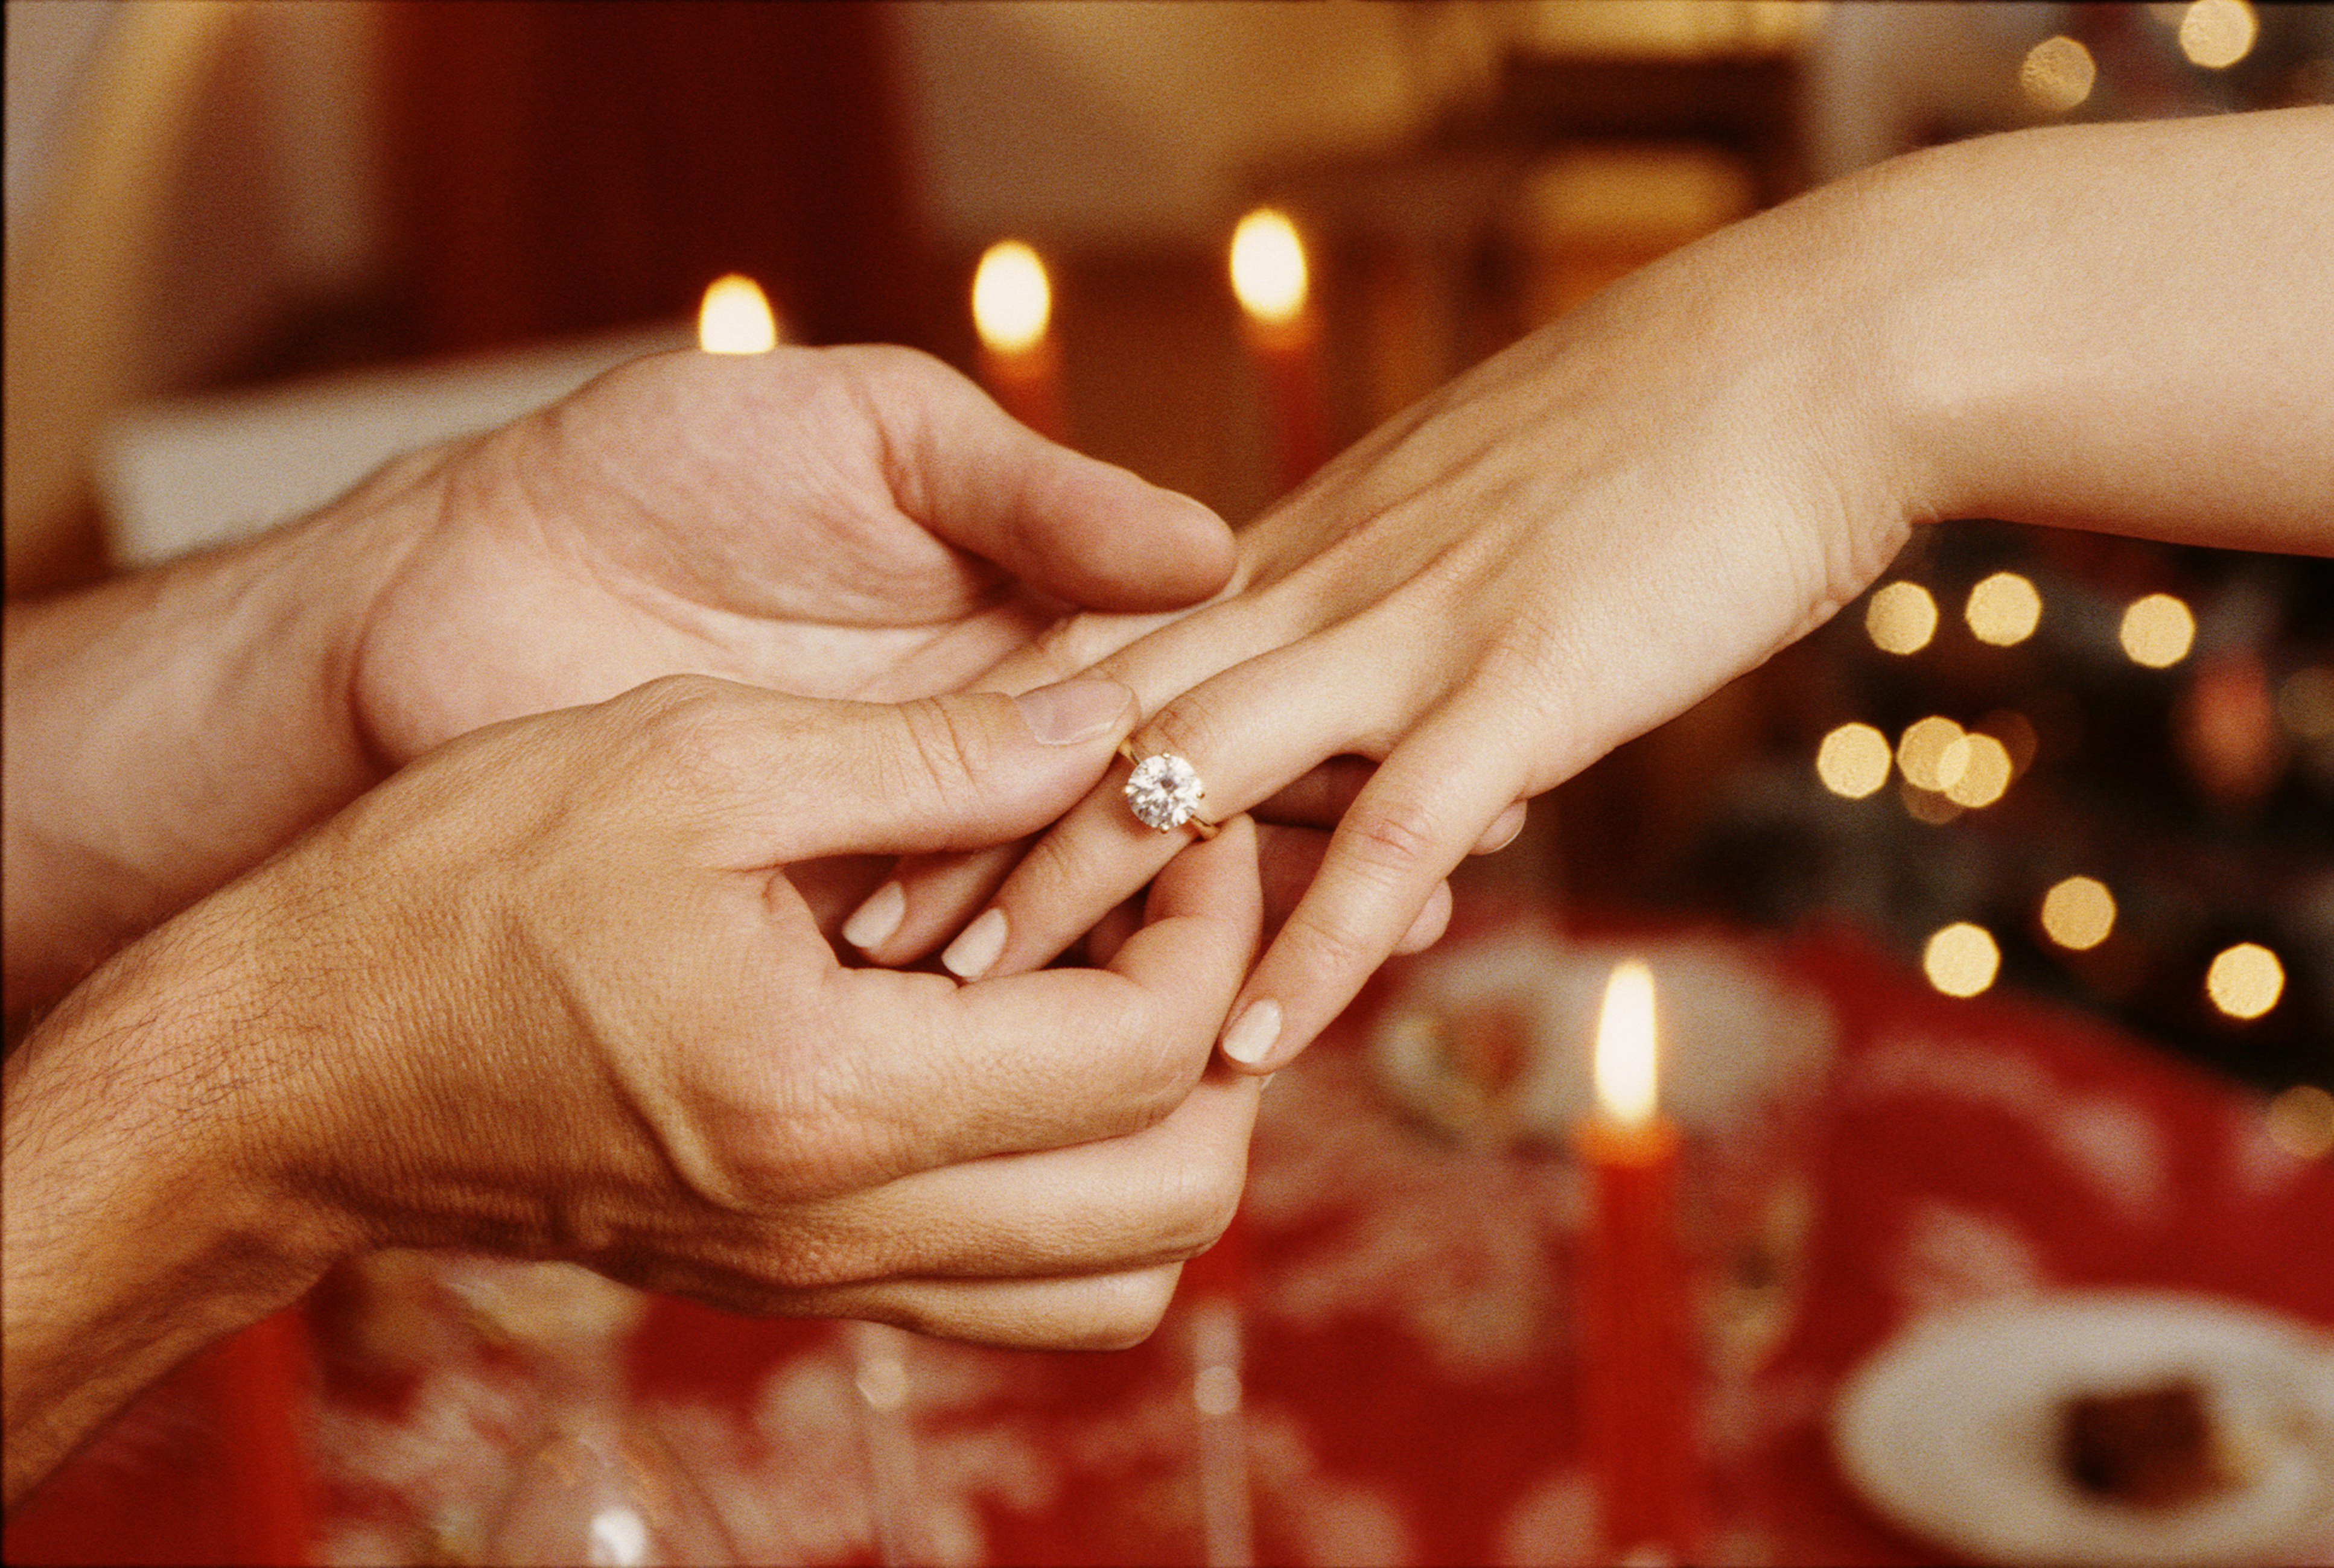 Man placing ring on woman's finger, close-up